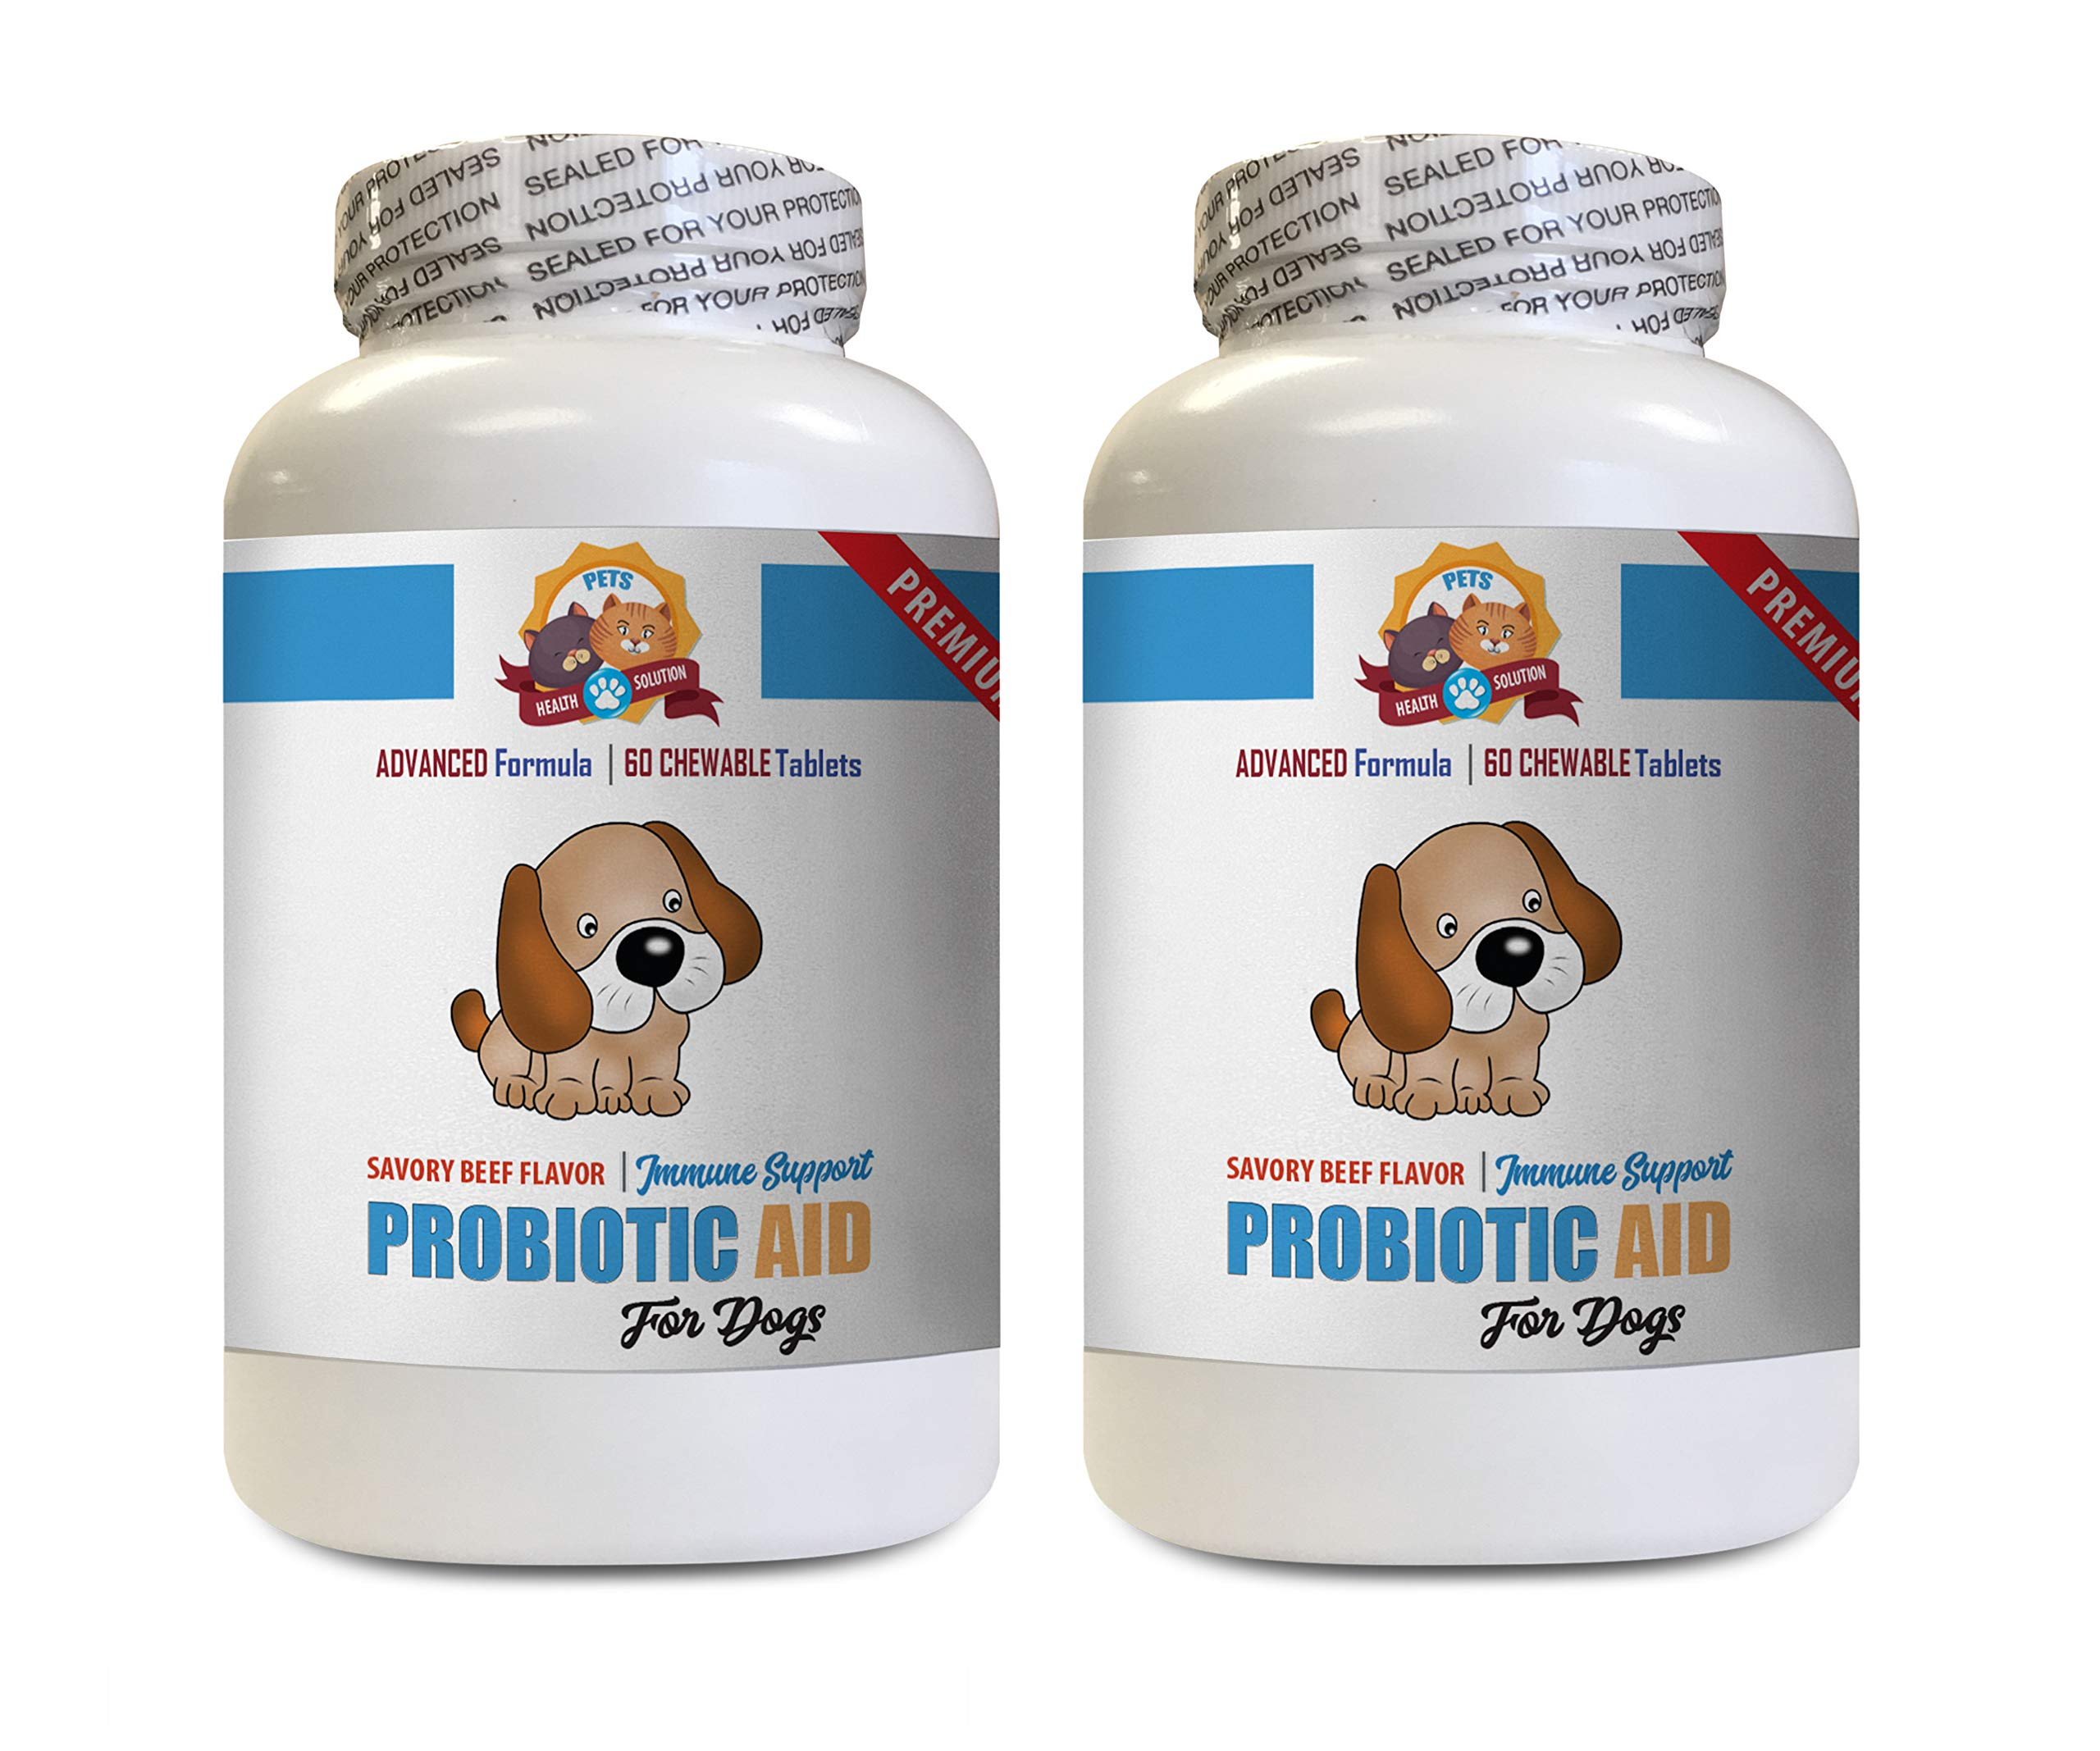 PETS HEALTH SOLUTION Dog probiotics Itch - Dog PROBIOTIC AID - Digestive Boost - GET RID of Bad Breath - Solves Bad Gas Issues - Inulin fos - 2 Bottles (120 Chewable Tablets) by PETS HEALTH SOLUTION